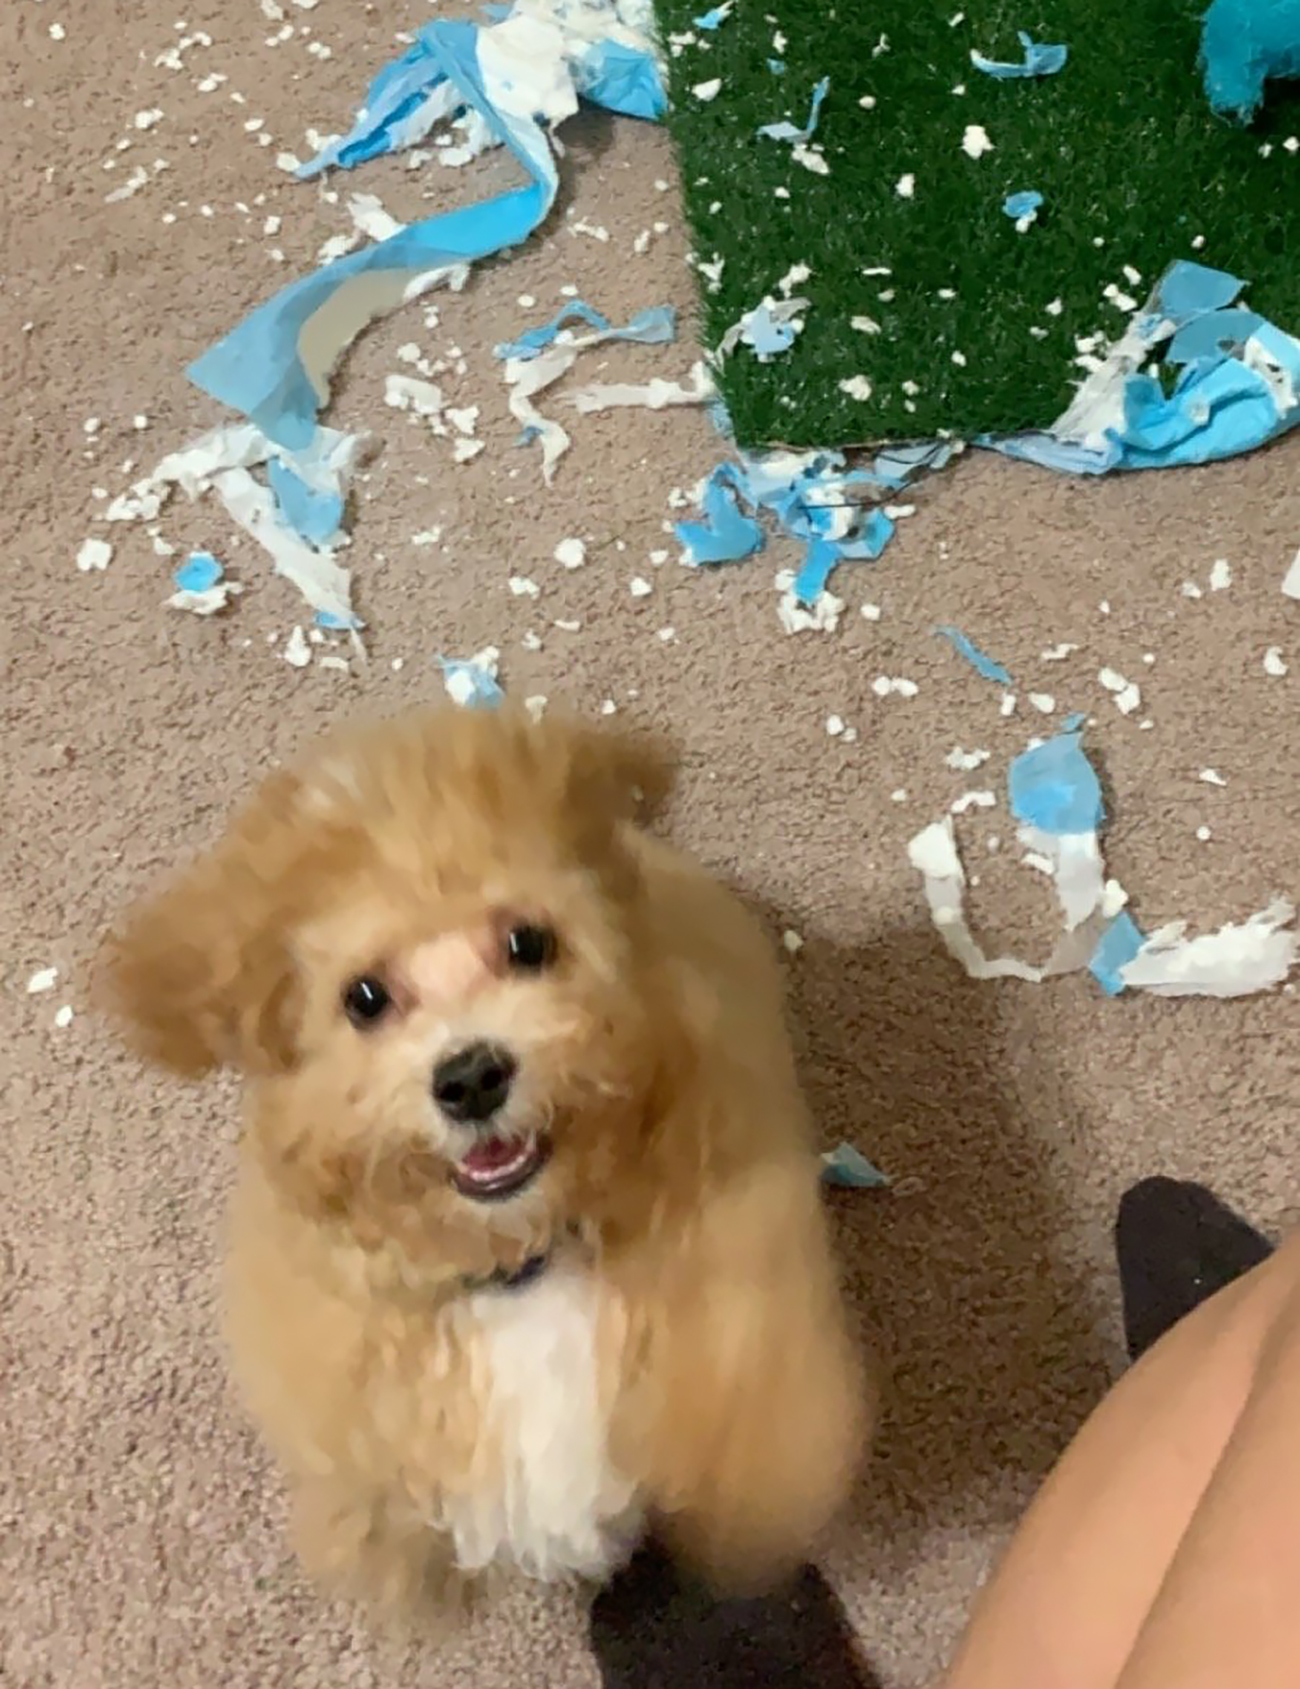 Hyper small fluffy dog greets owner after ripping up plastic bag